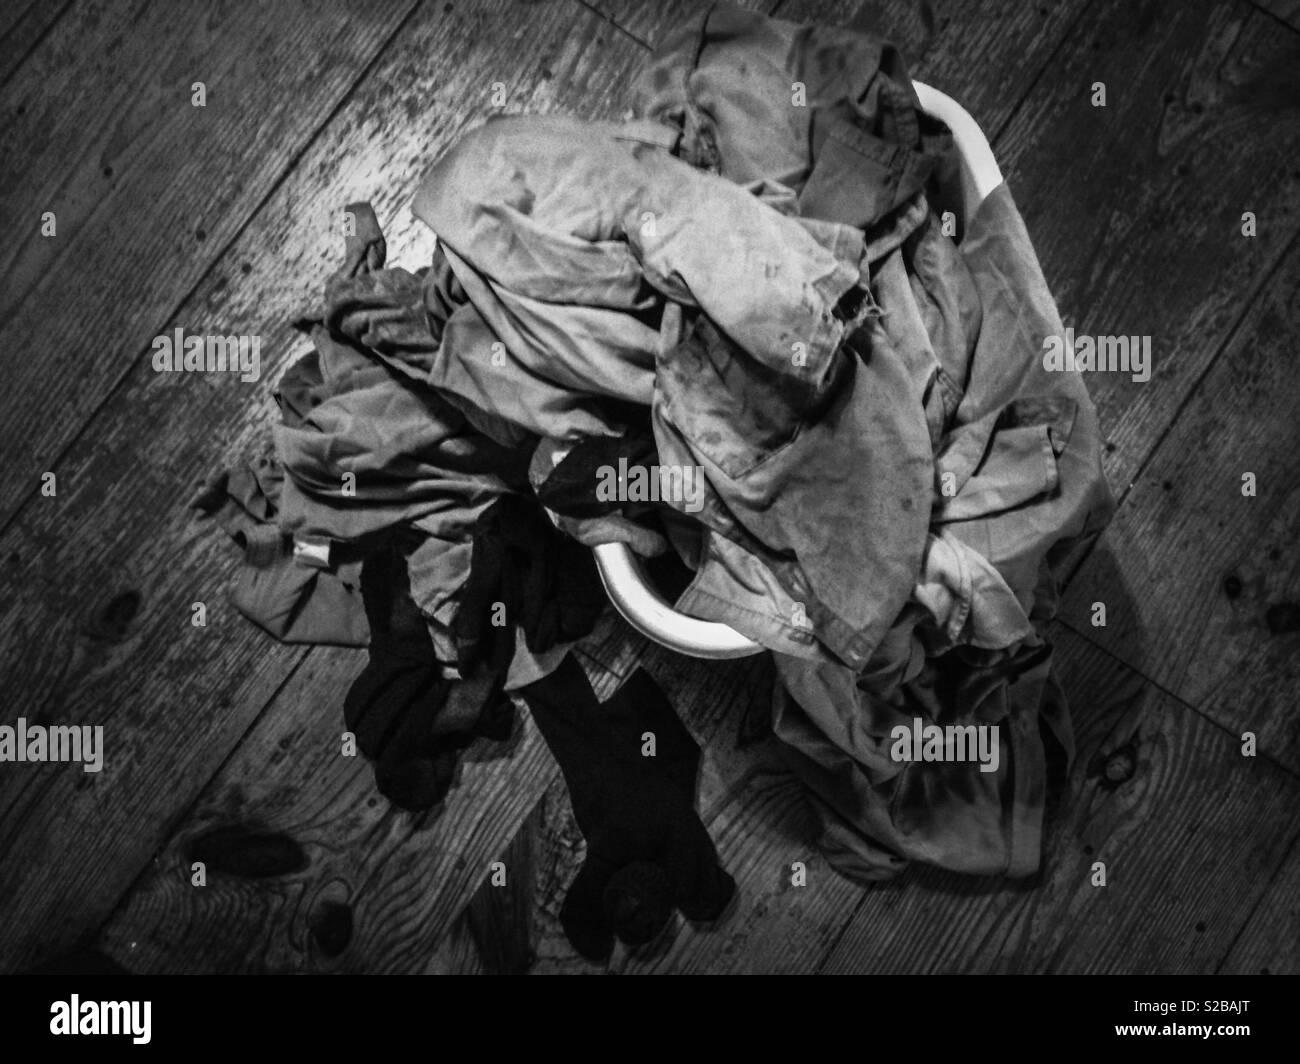 Black and white photo of dirty laundry spilling over laundry basket- beauty in the mundane- viewed from above - Stock Image